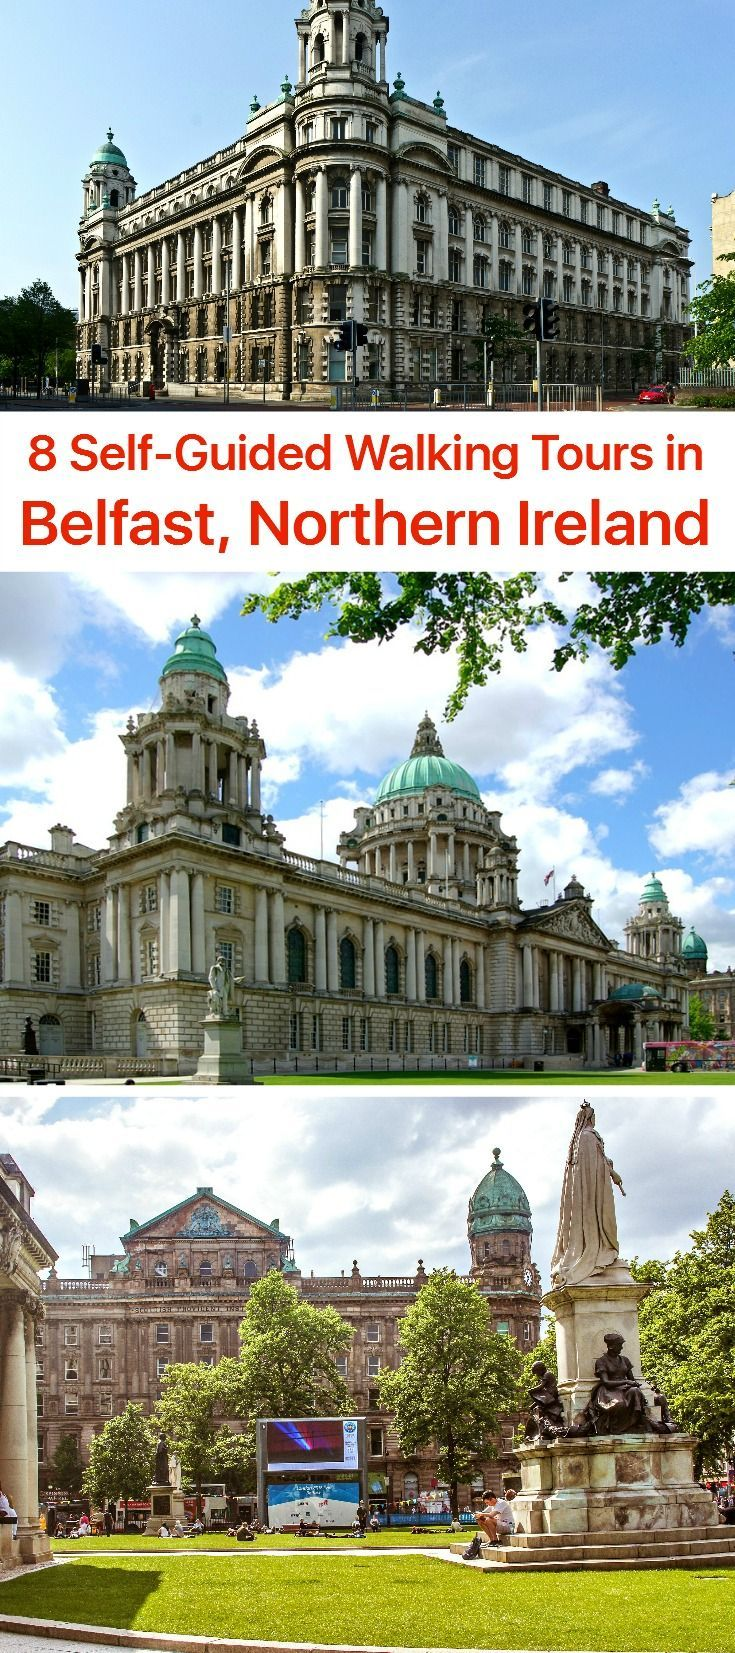 The capital of Northern Ireland, Belfast is a major port city known primarily as…